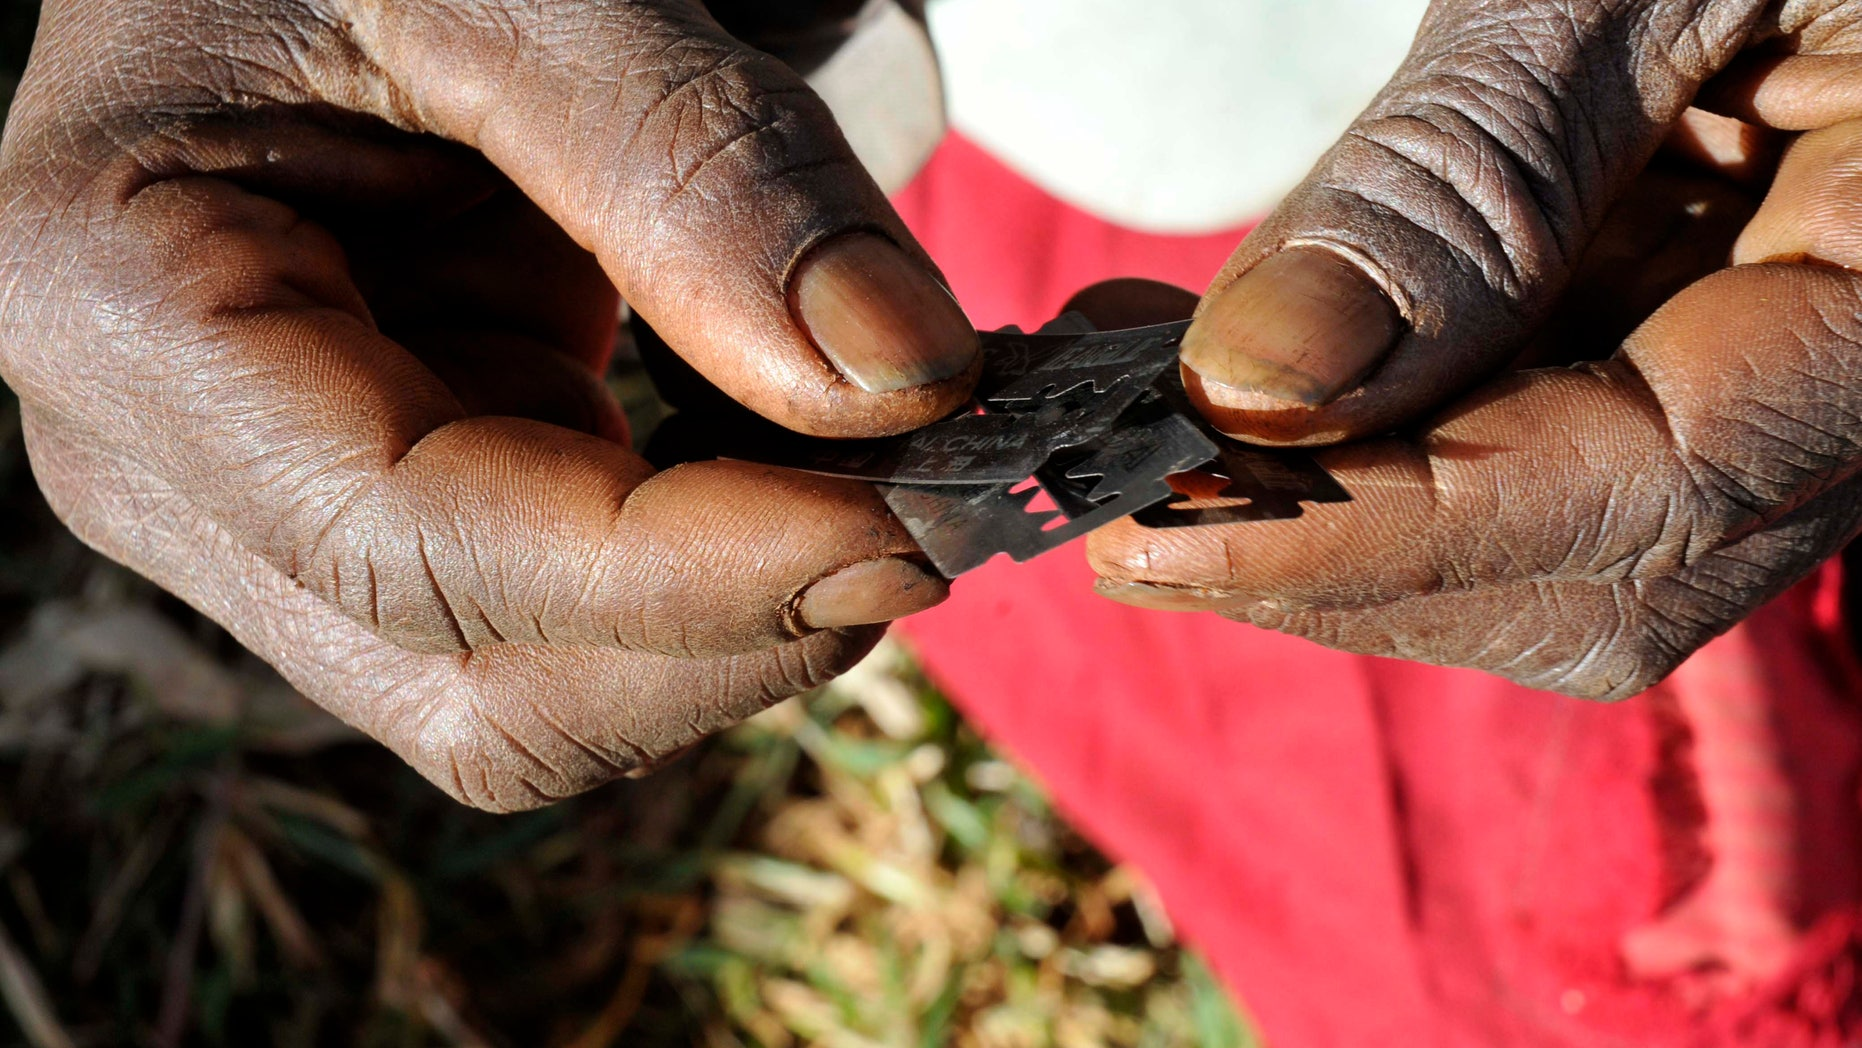 Prisca Korein, a 62-year-old traditional surgeon, holds razor blades before carrying out female genital mutilation on teenage girls from the Sebei tribe in Bukwa district, about 357 kms (214 miles) northeast of Kampala, December 15, 2008. The ceremony was to initiate the teenagers into womanhood according to Sebei traditional rites.